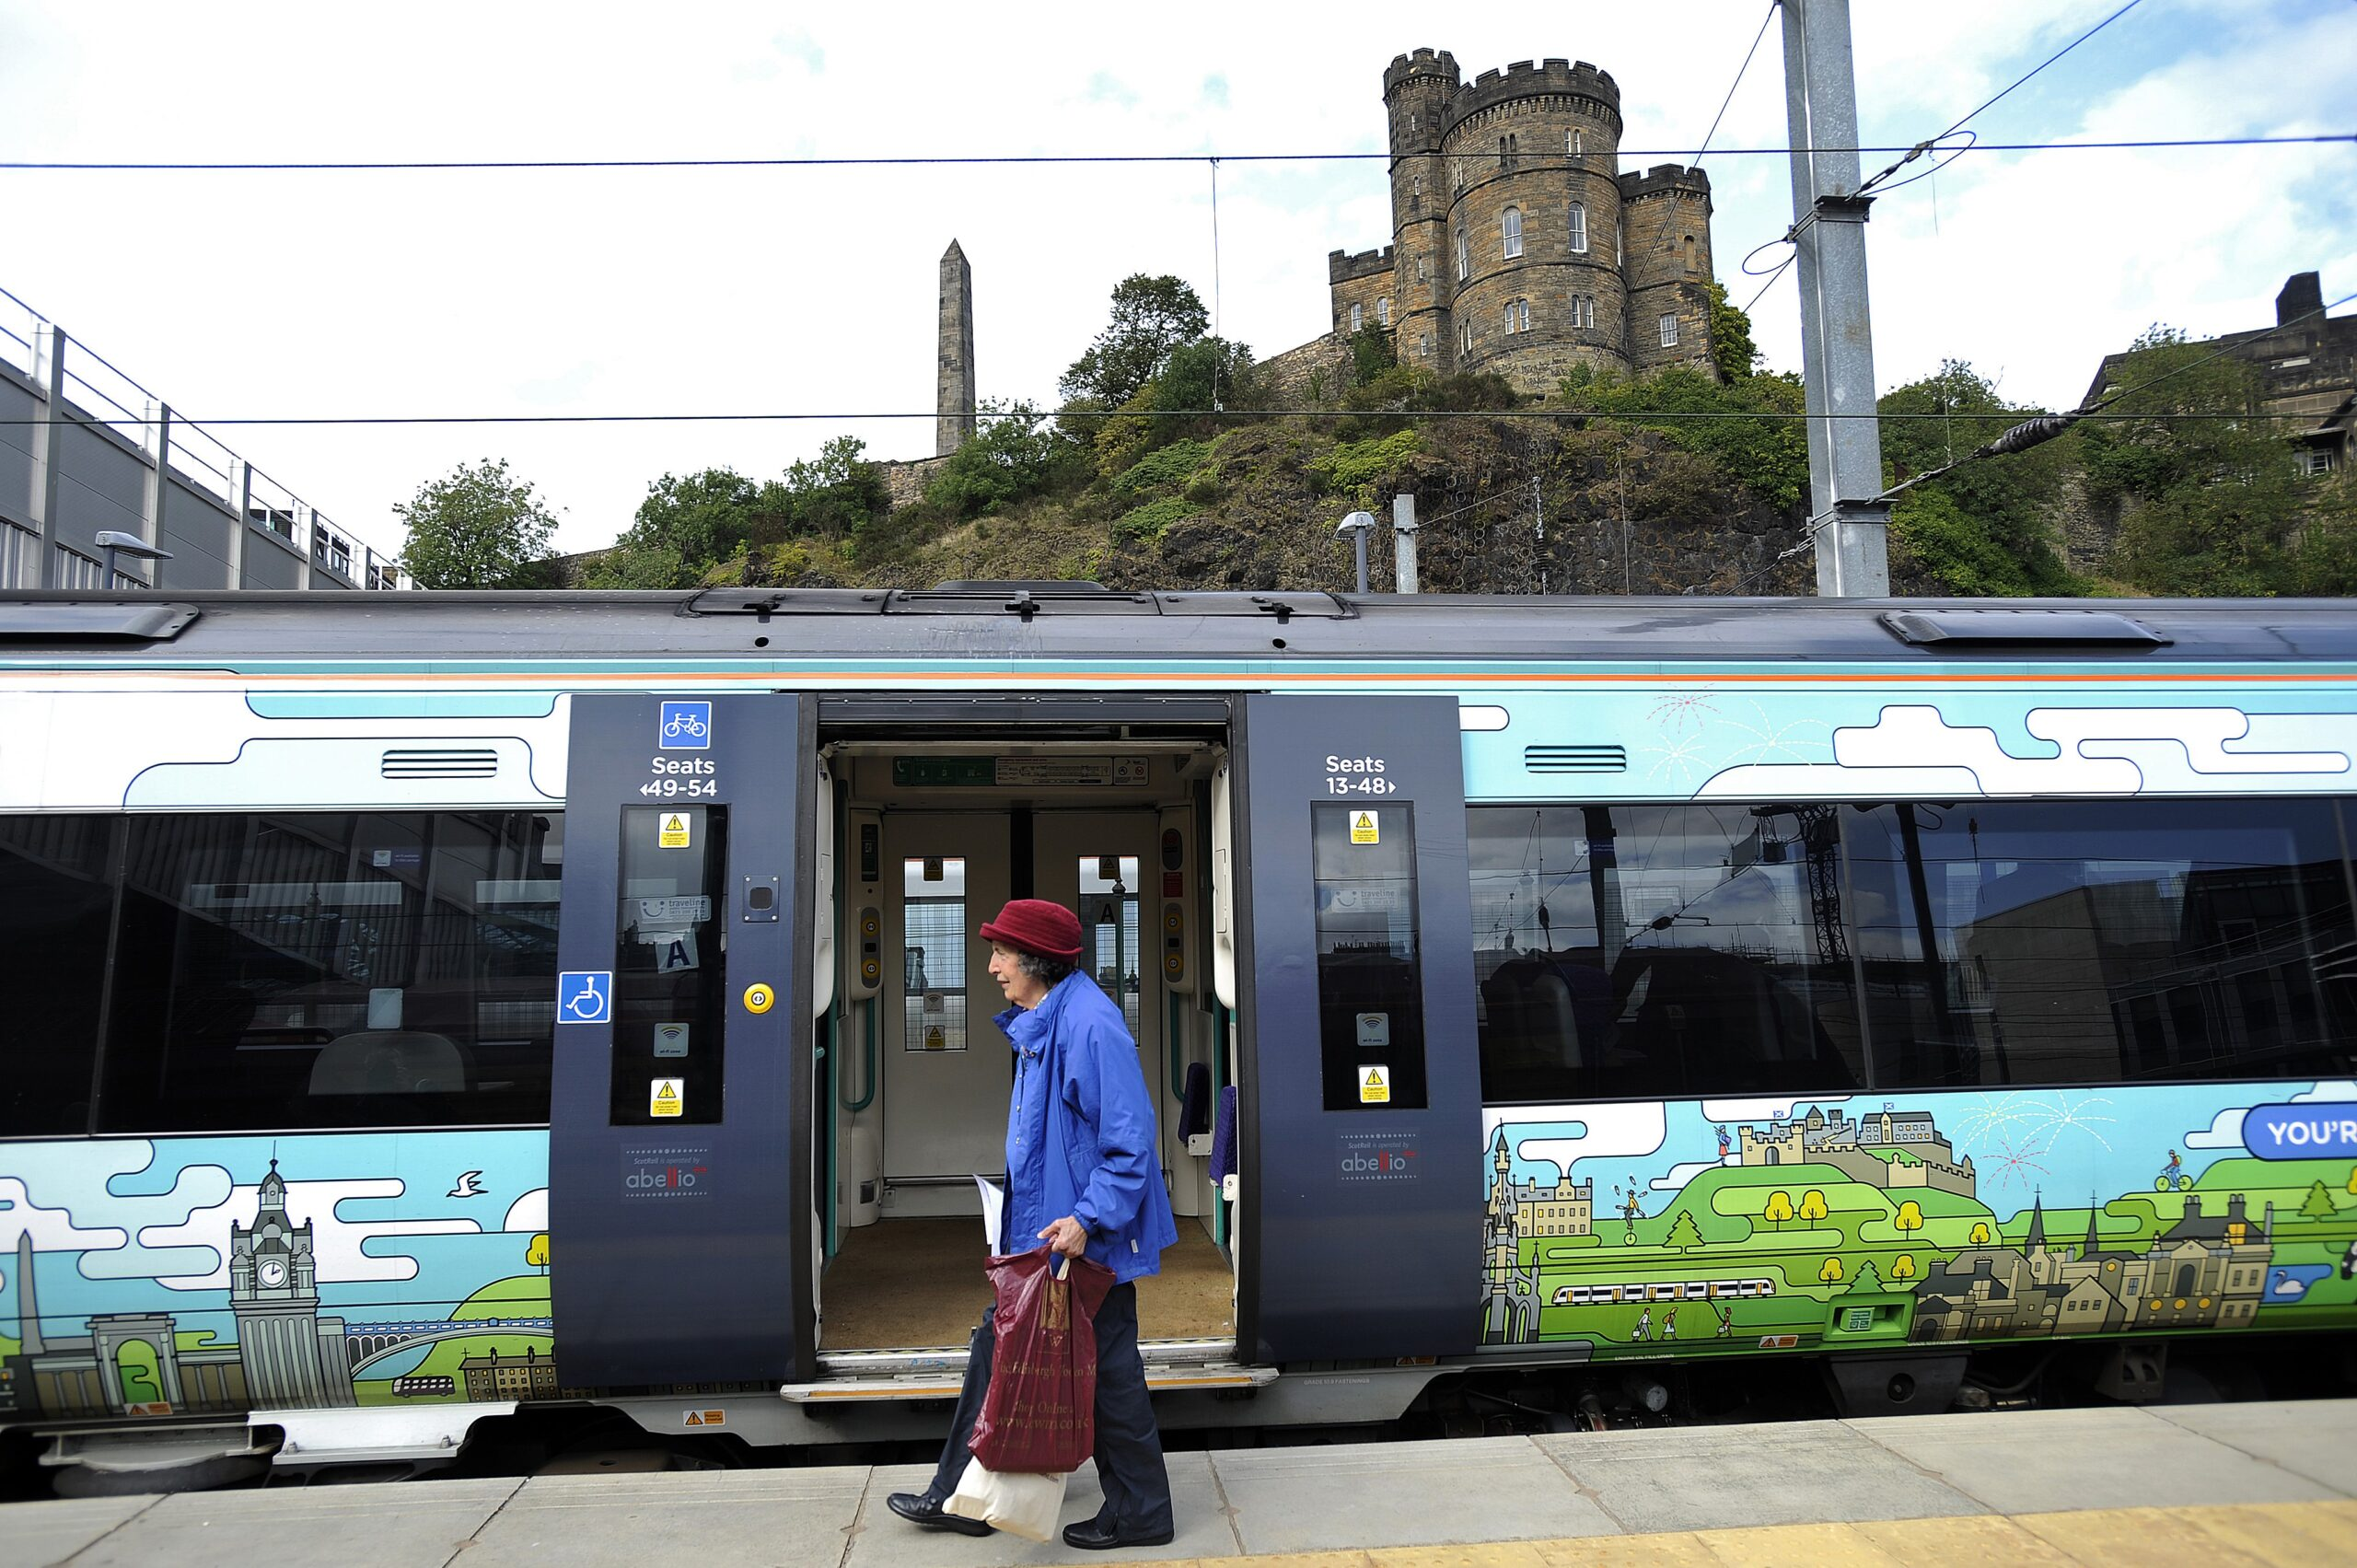 An older woman carrying chopping bags walks past a shiny new train with a castle in the background